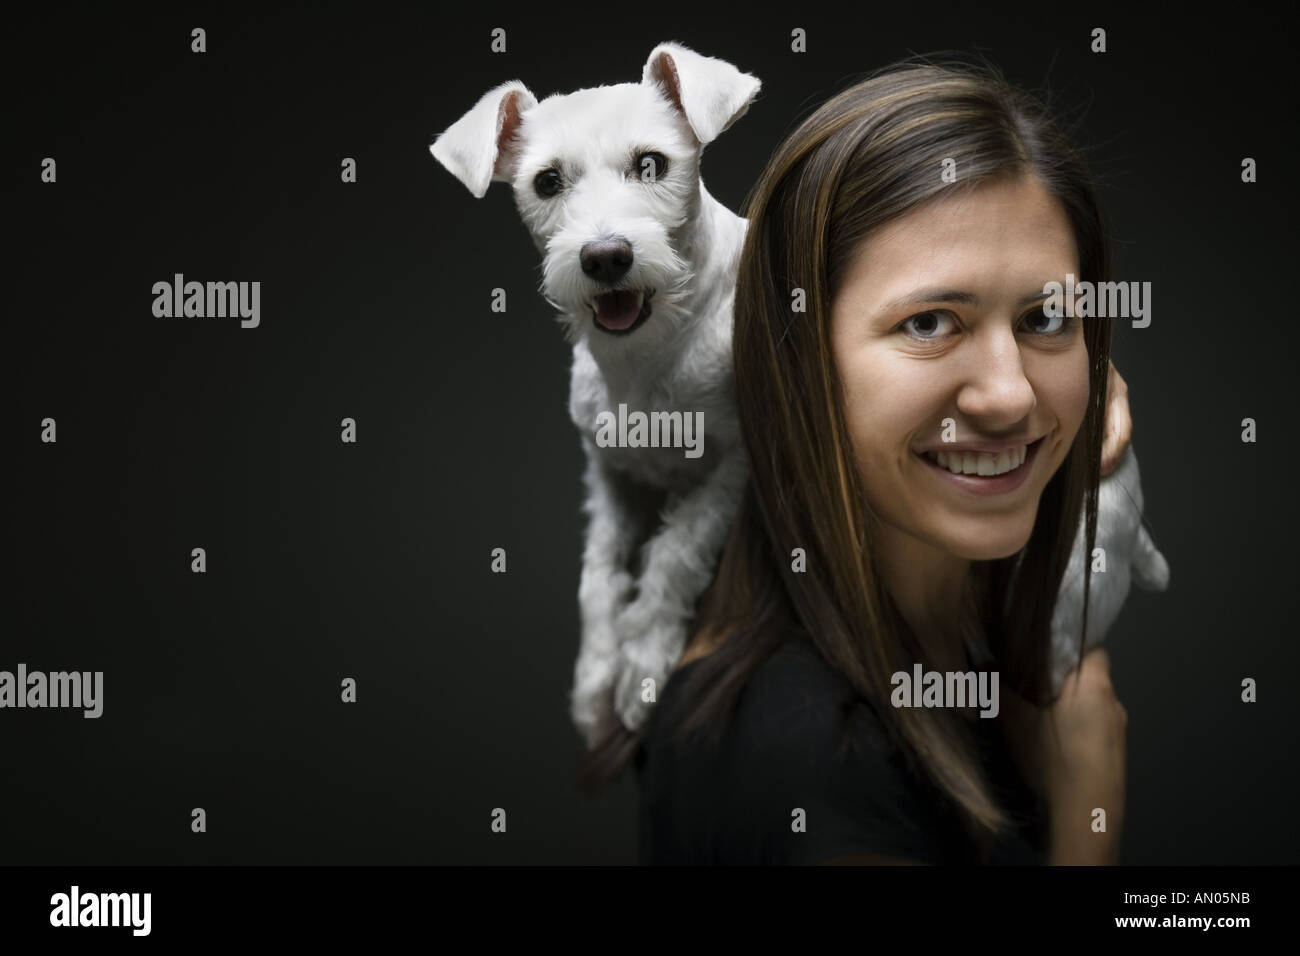 Portrait of a young woman carrying a dog on her shoulders and smiling - Stock Image